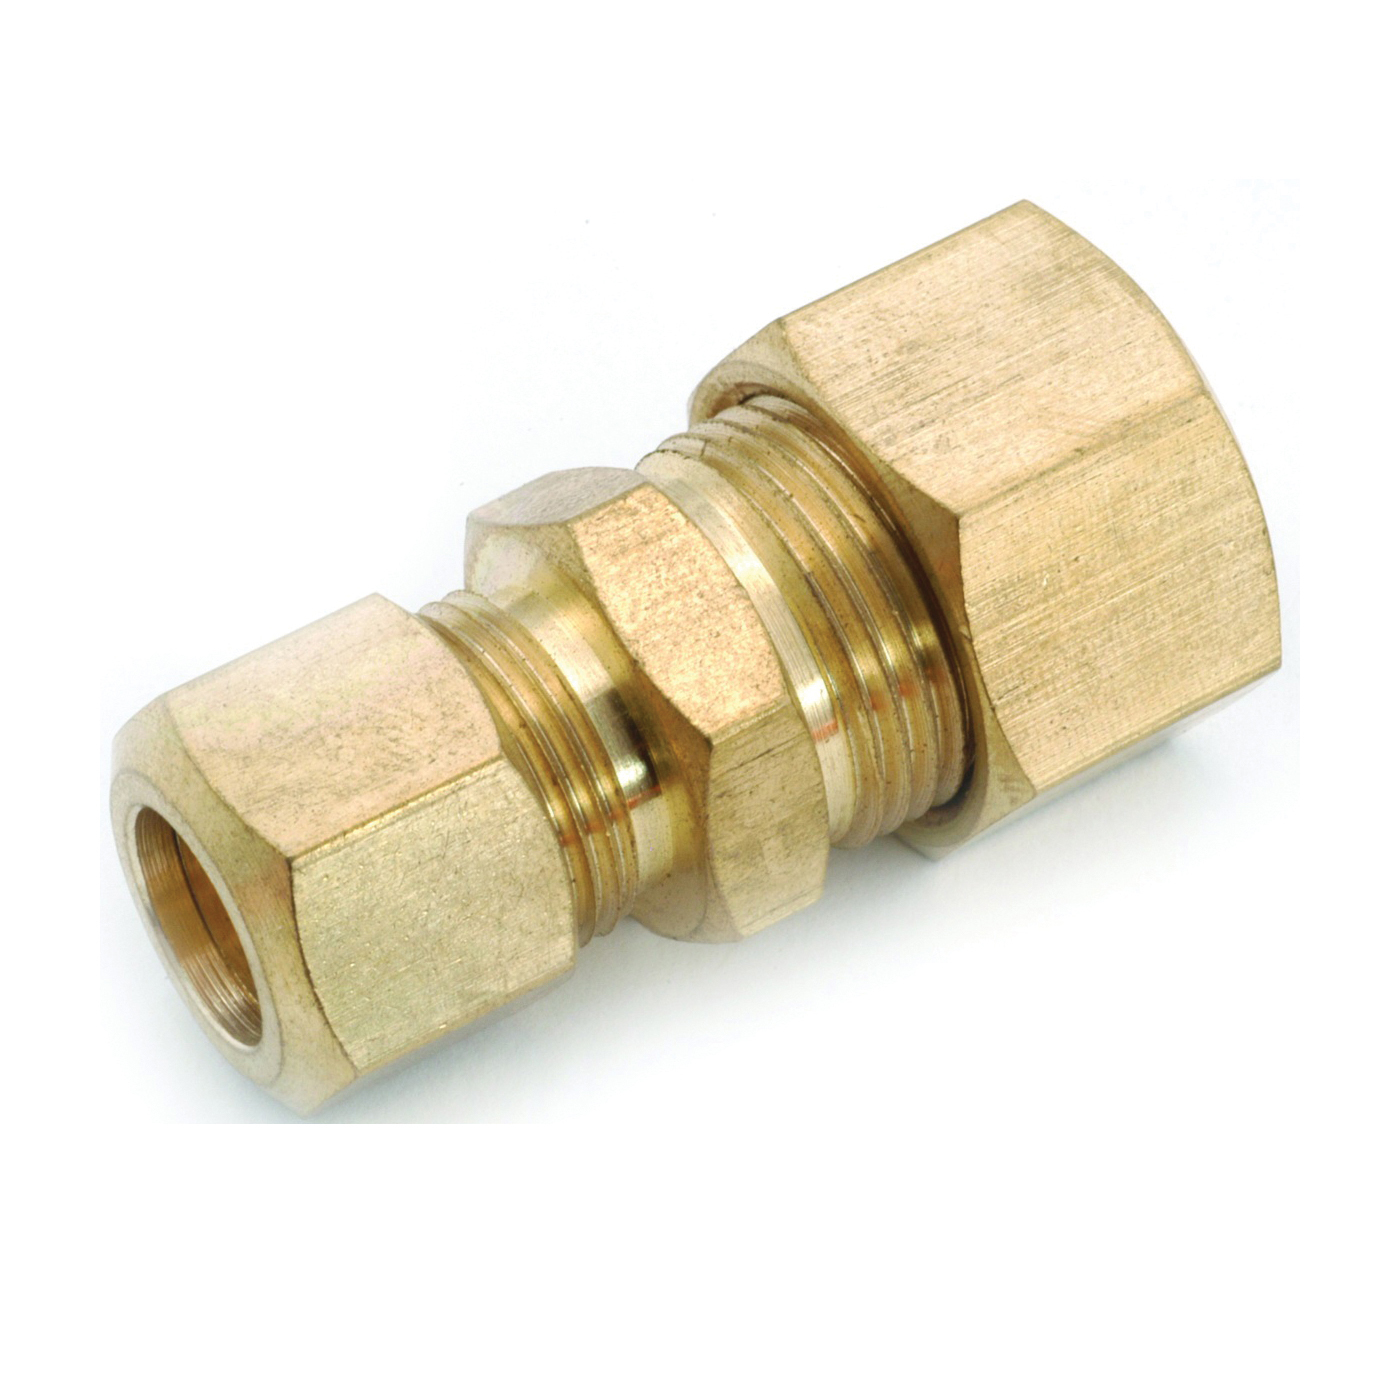 Picture of Anderson Metals 750082-1006 Tube Reducing Union, 5/8 x 3/8 in, Compression, Brass